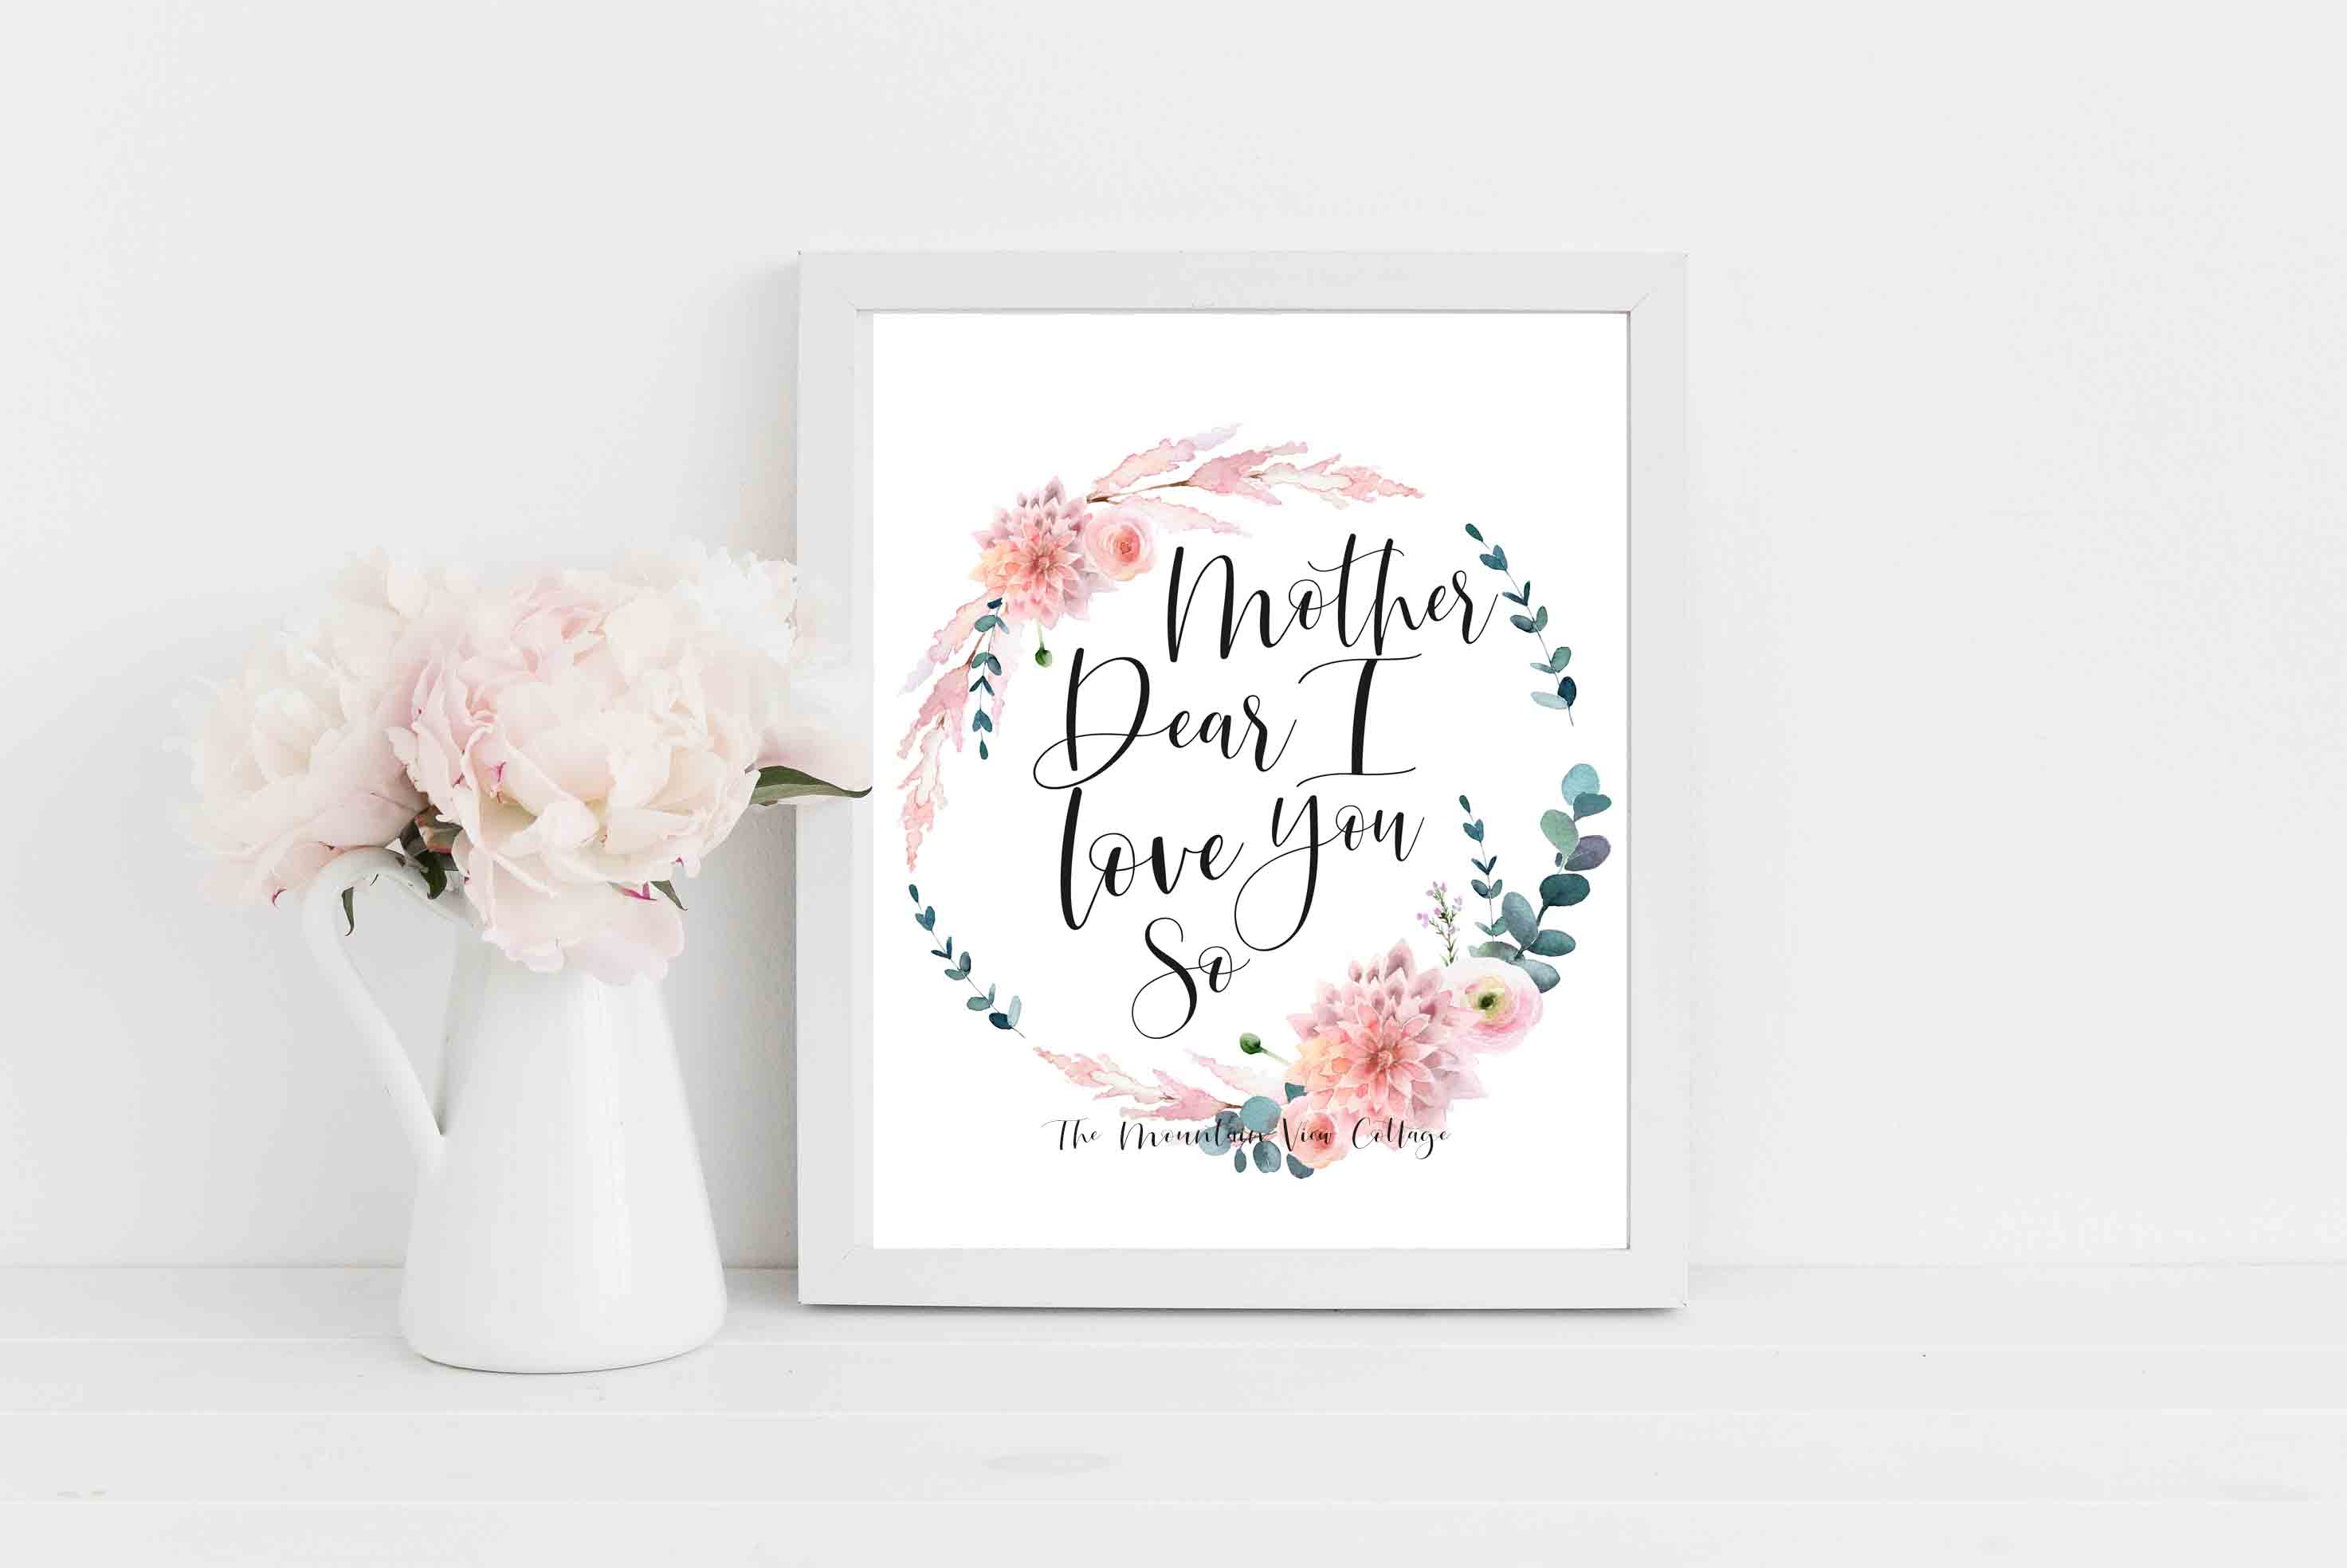 26 Mom Quotes With Beautiful Images The Mountain View Cottage